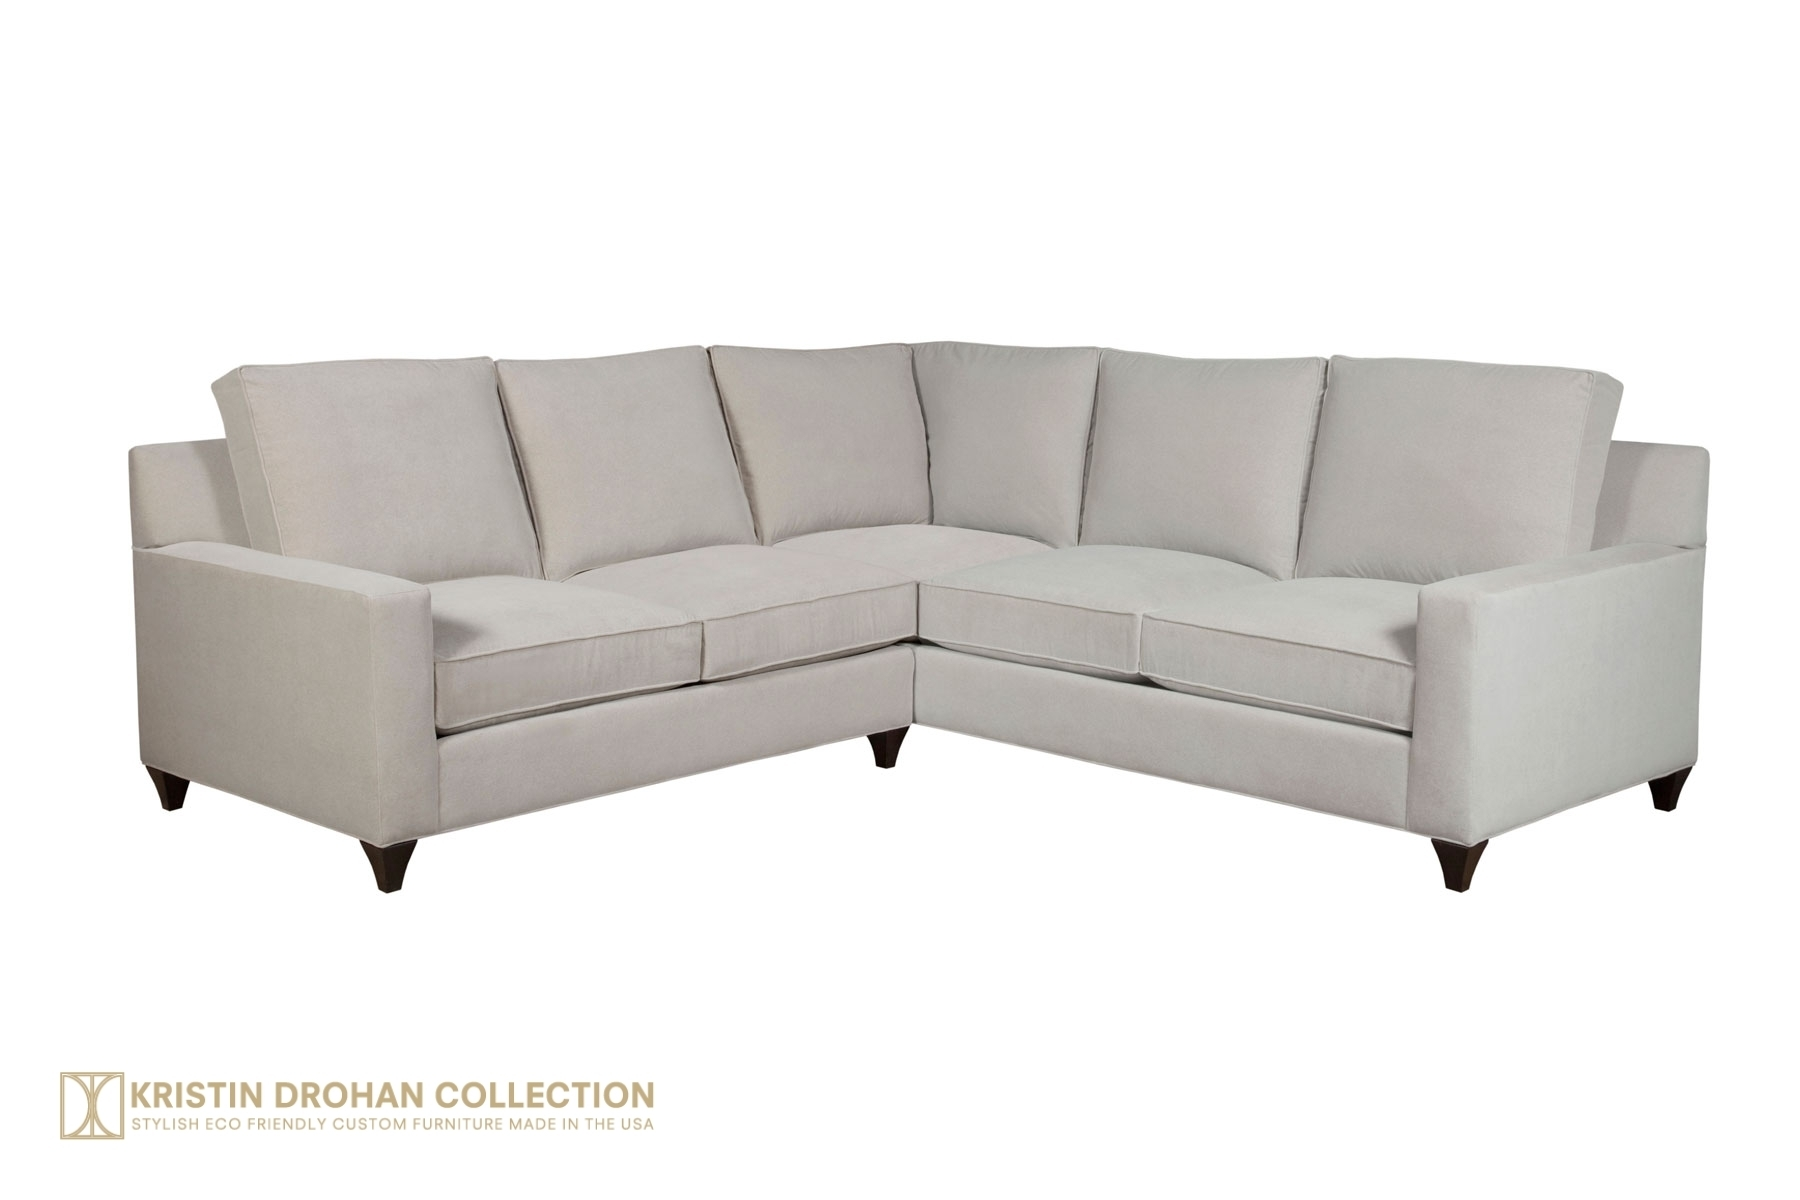 Loree Sectional - The Kristin Drohan Collection inside Kristen Silver Grey 6 Piece Power Reclining Sectionals